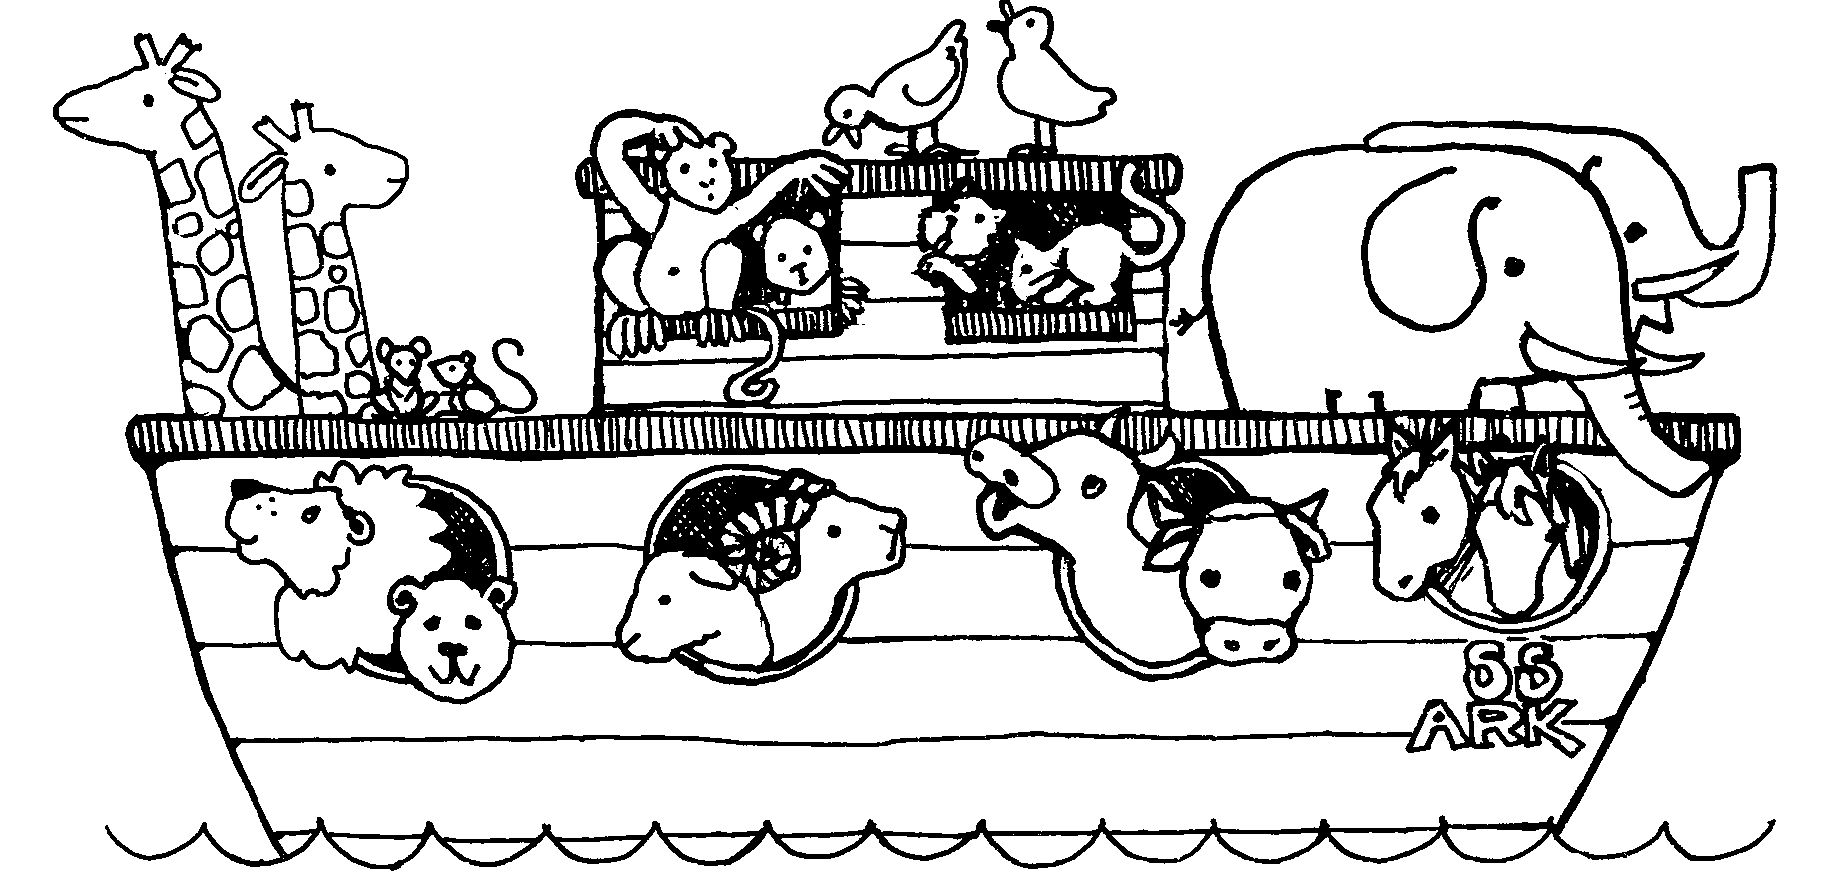 noahs ark coloring pages free noah's ark coloring pages | Posts related to Noah Ark  noahs ark coloring pages